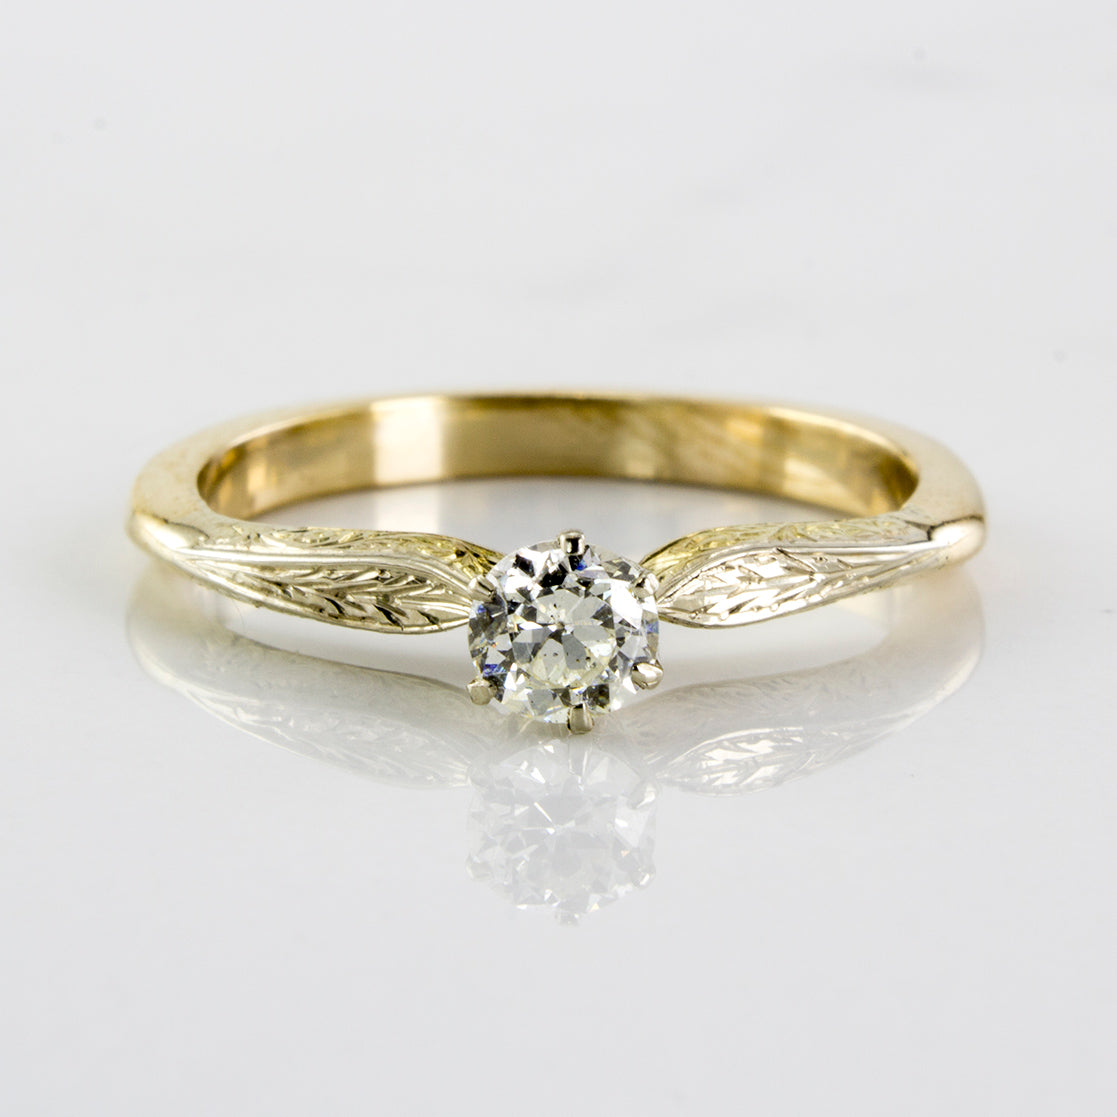 Delicate Edwardian Era Solitaire Engagement Ring | 0.25 ctw | SZ 6 |